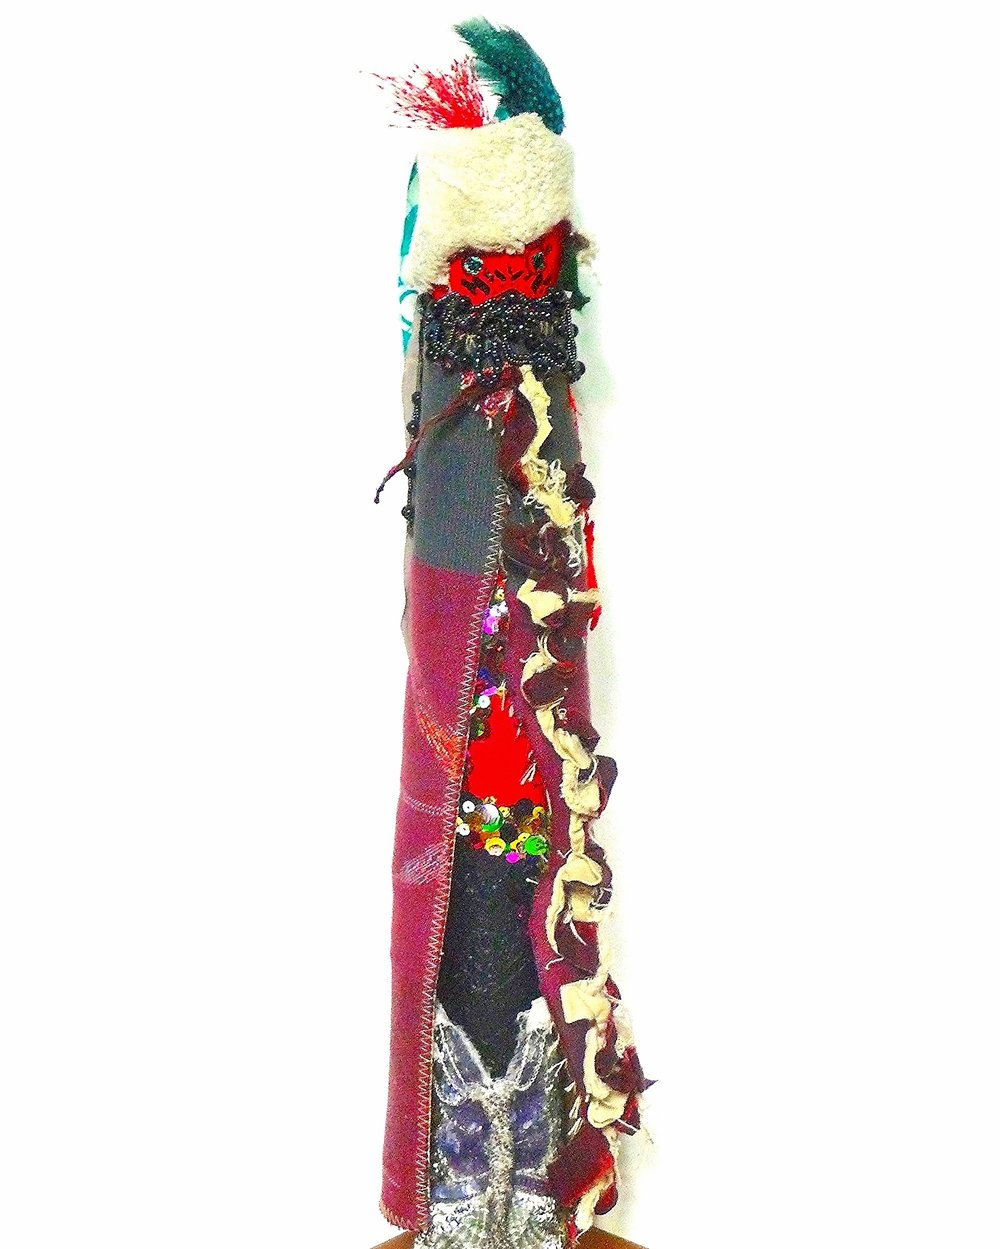 Eagle Eye.  Feathers, beads, sequins, fabric, string, marker, foil, thread, acrylic, vintage applique on industrial cardboard tube. 21 x 4 1/2 in.round (53.3 x 11.4 cm.) 2014